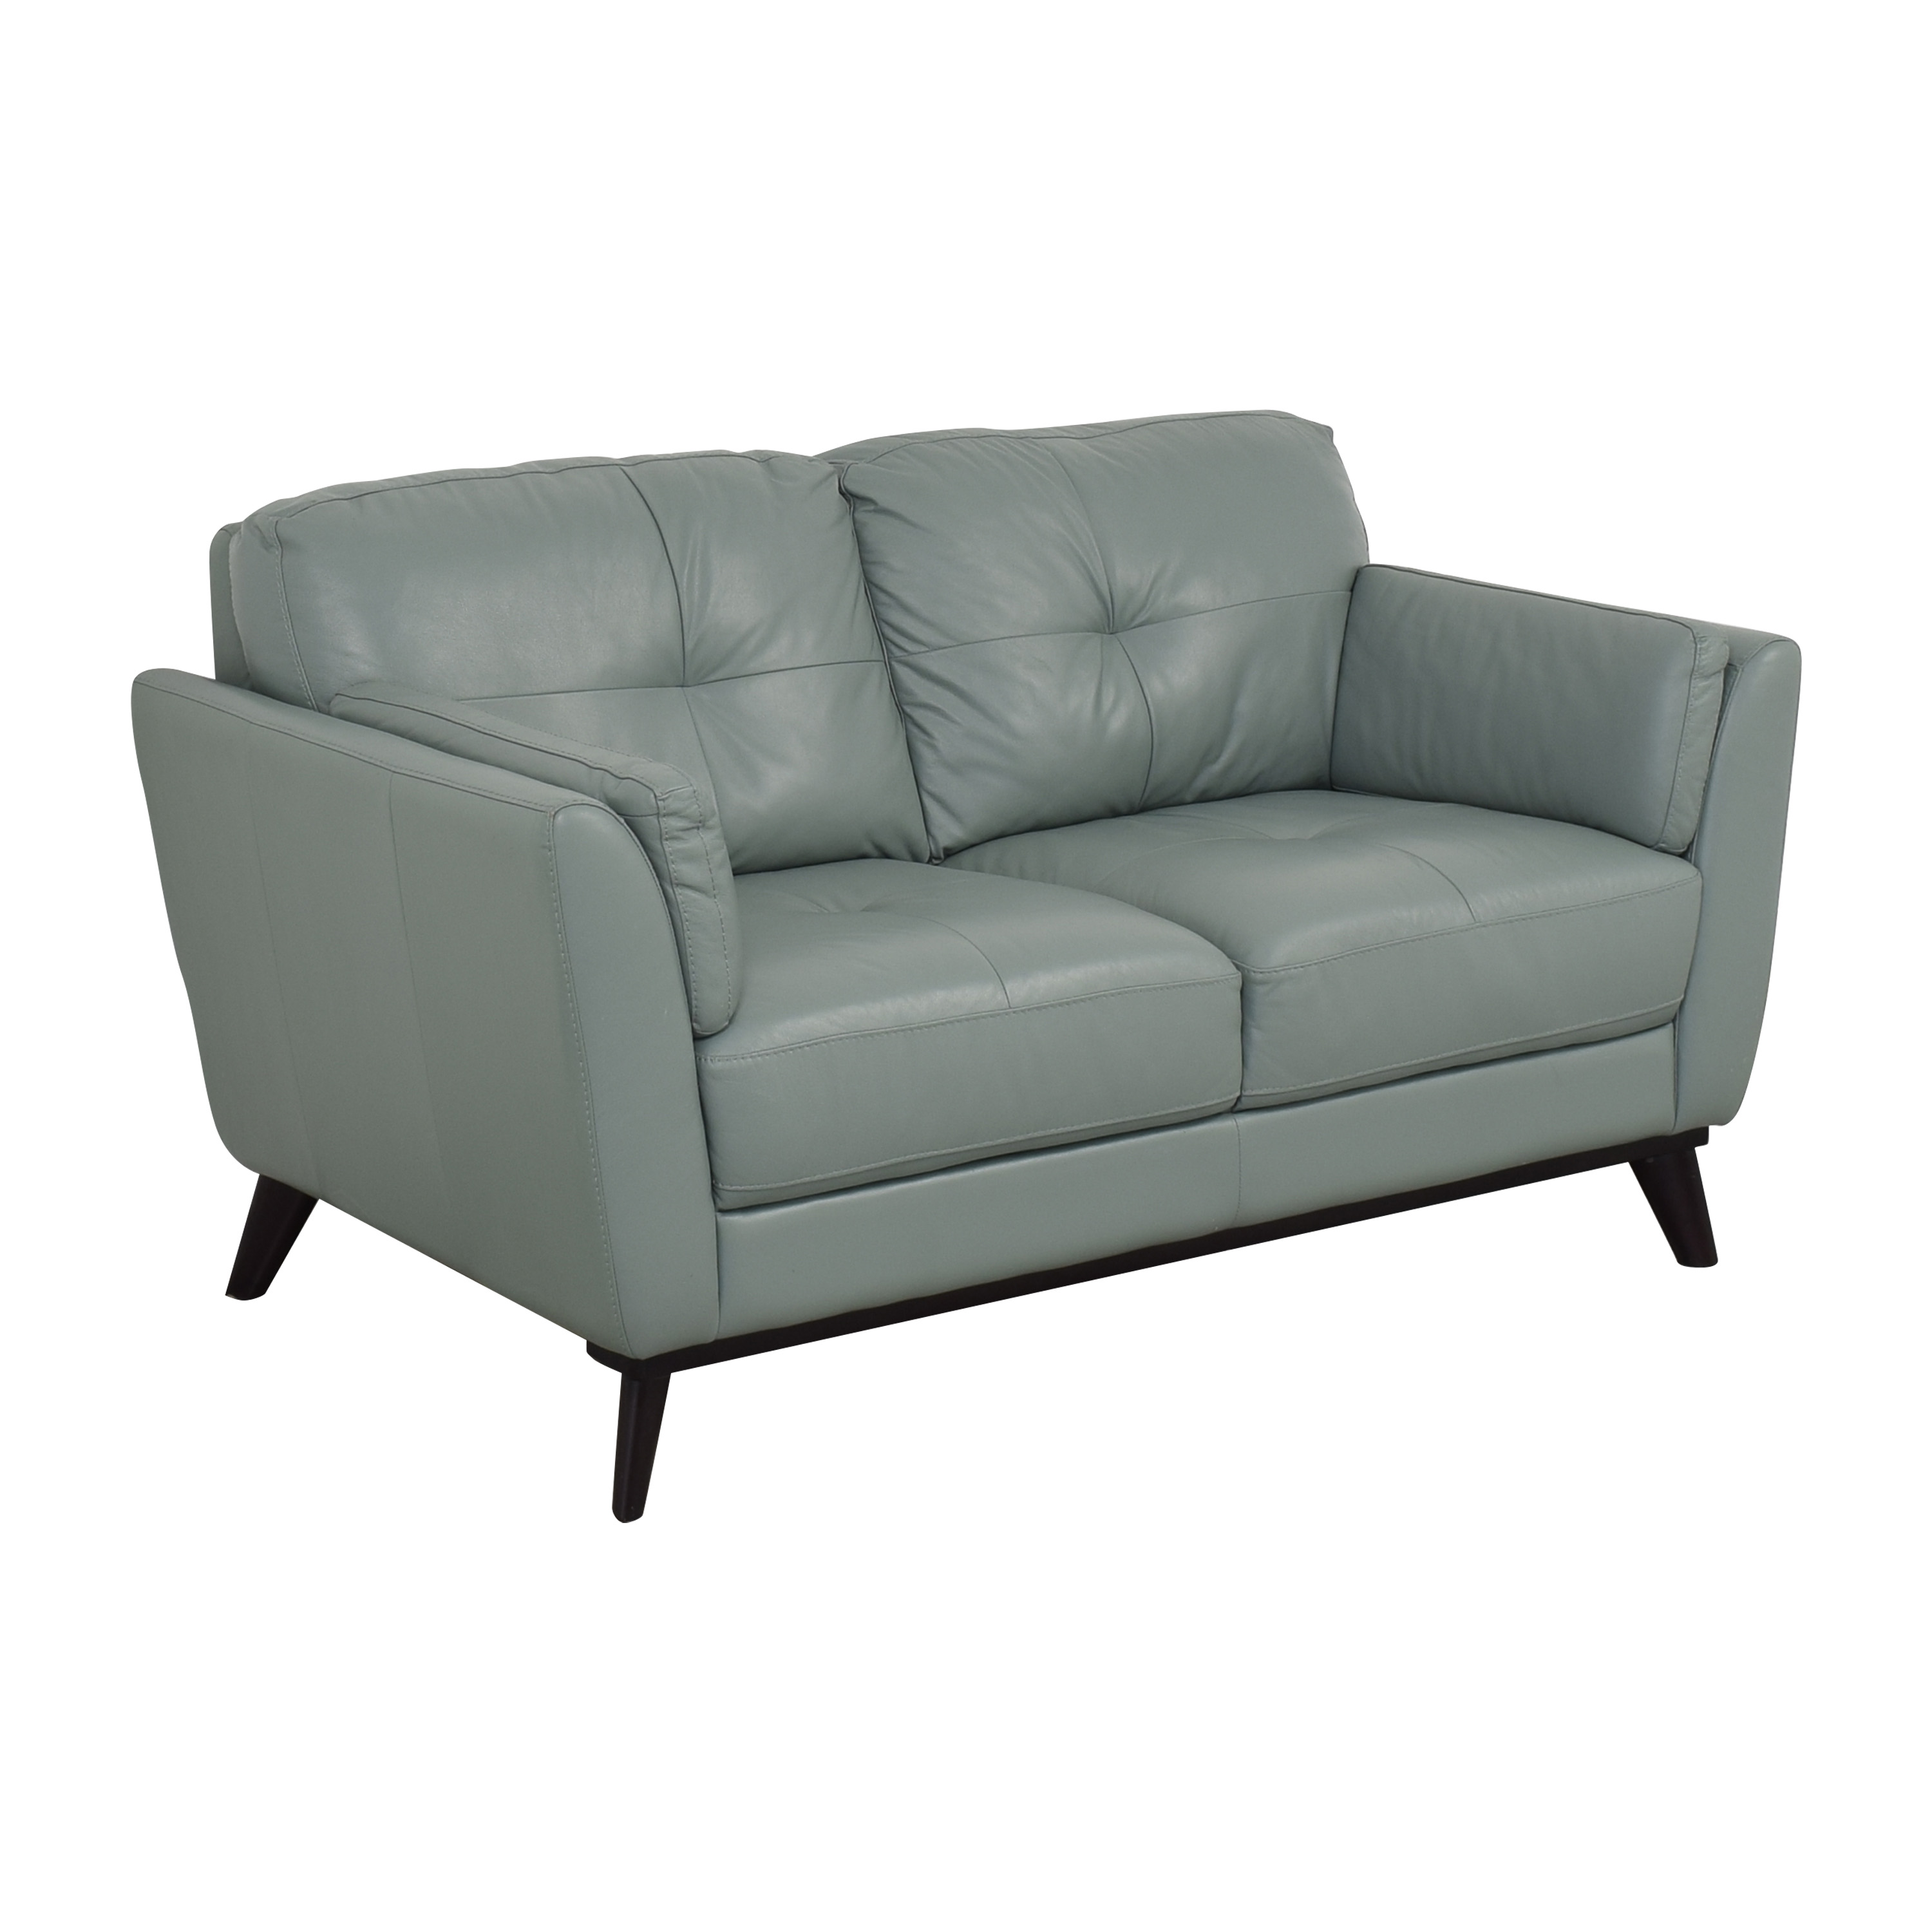 Rooms To Go Sofia Vergara Collection Gabriele Loveseat teal